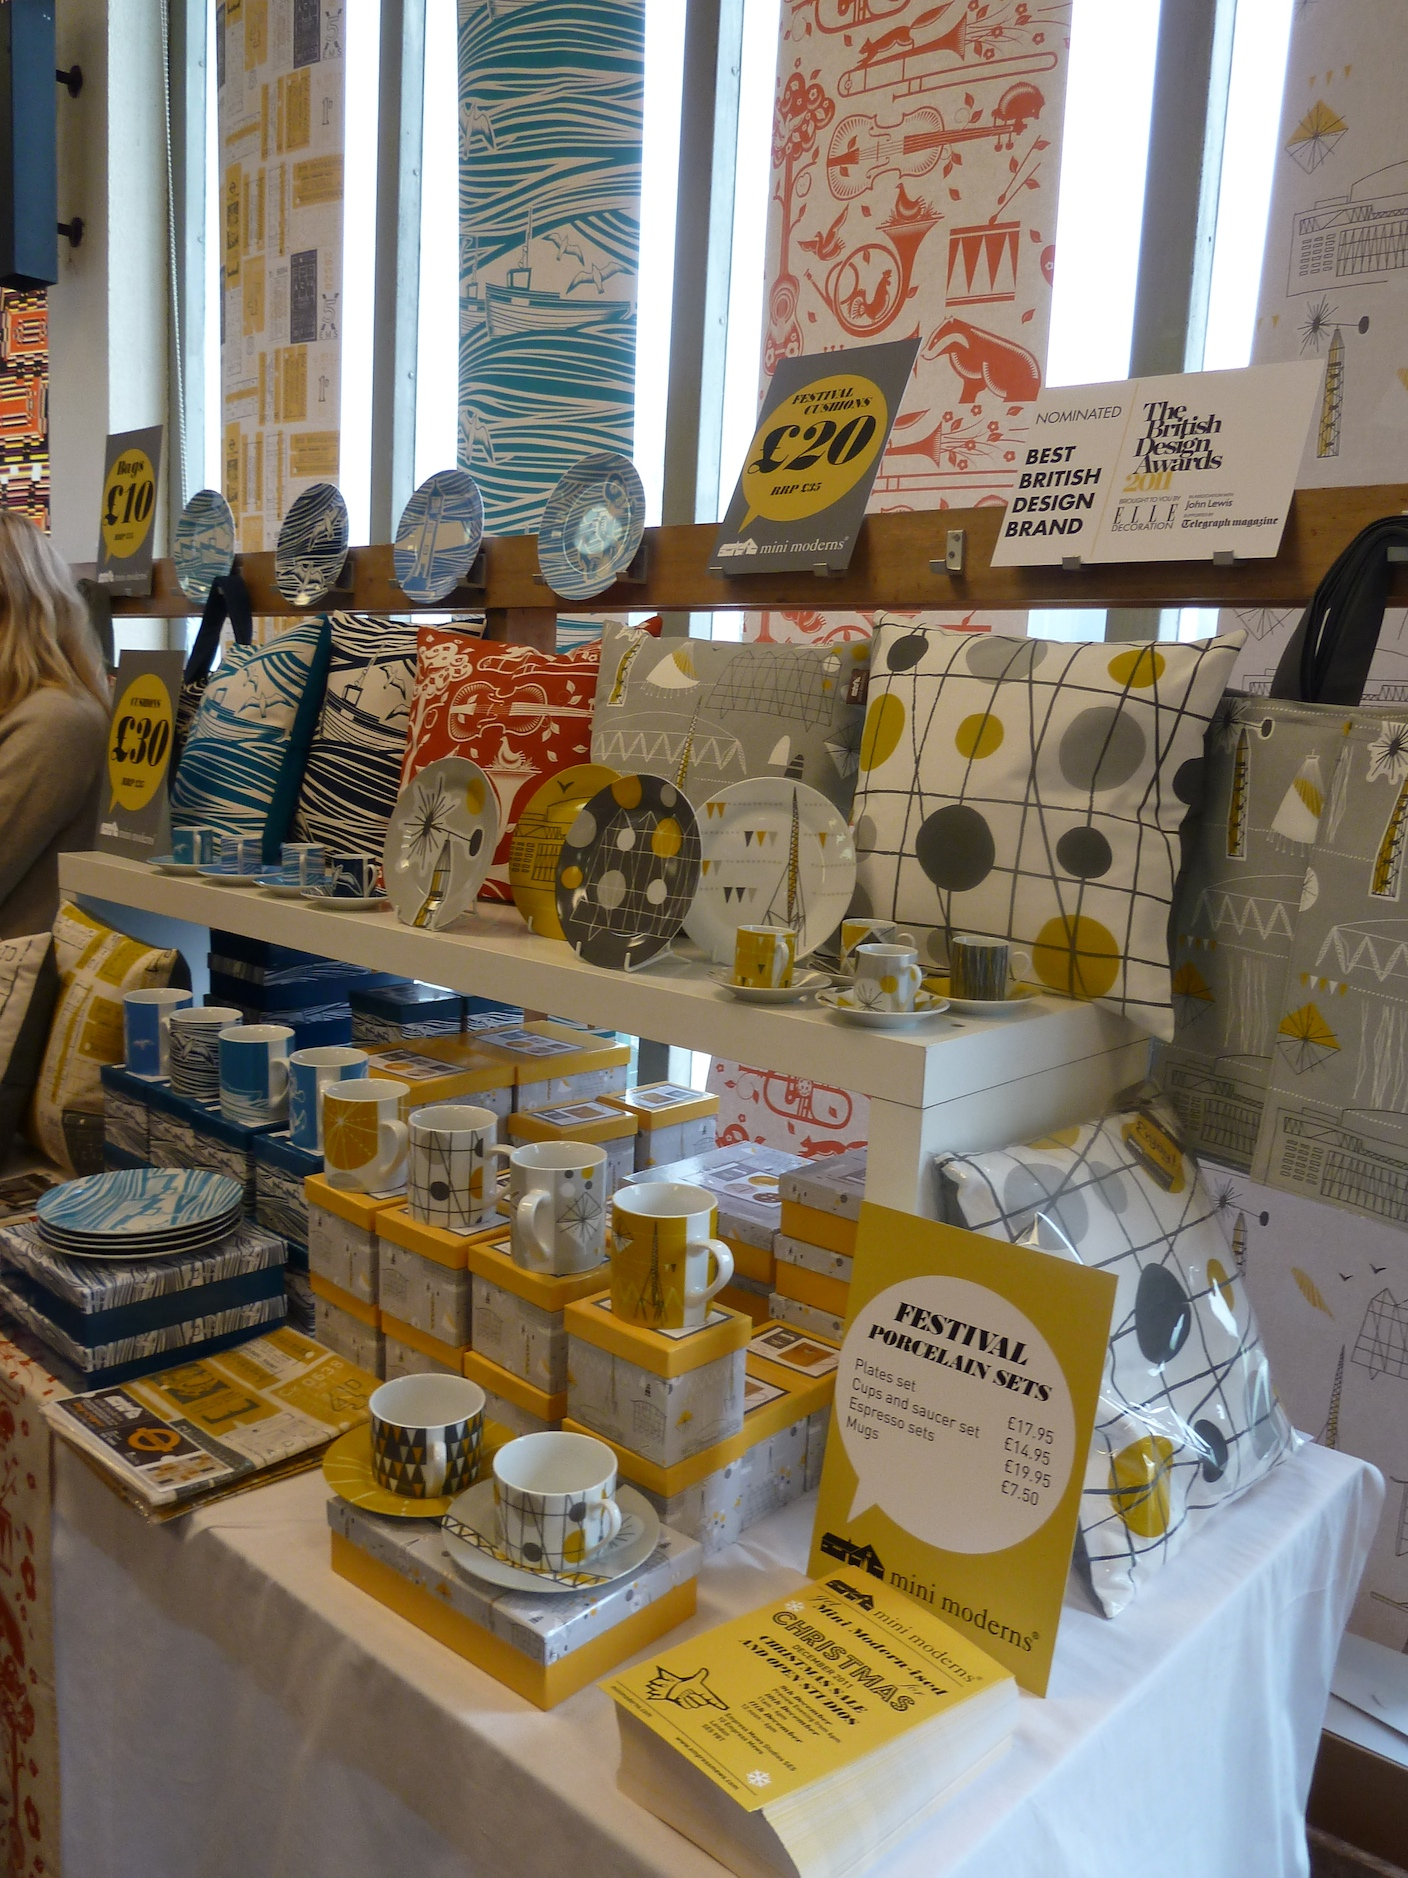 Mini Moderns had some good offers at the Midcentury Modern fair in Dulwich